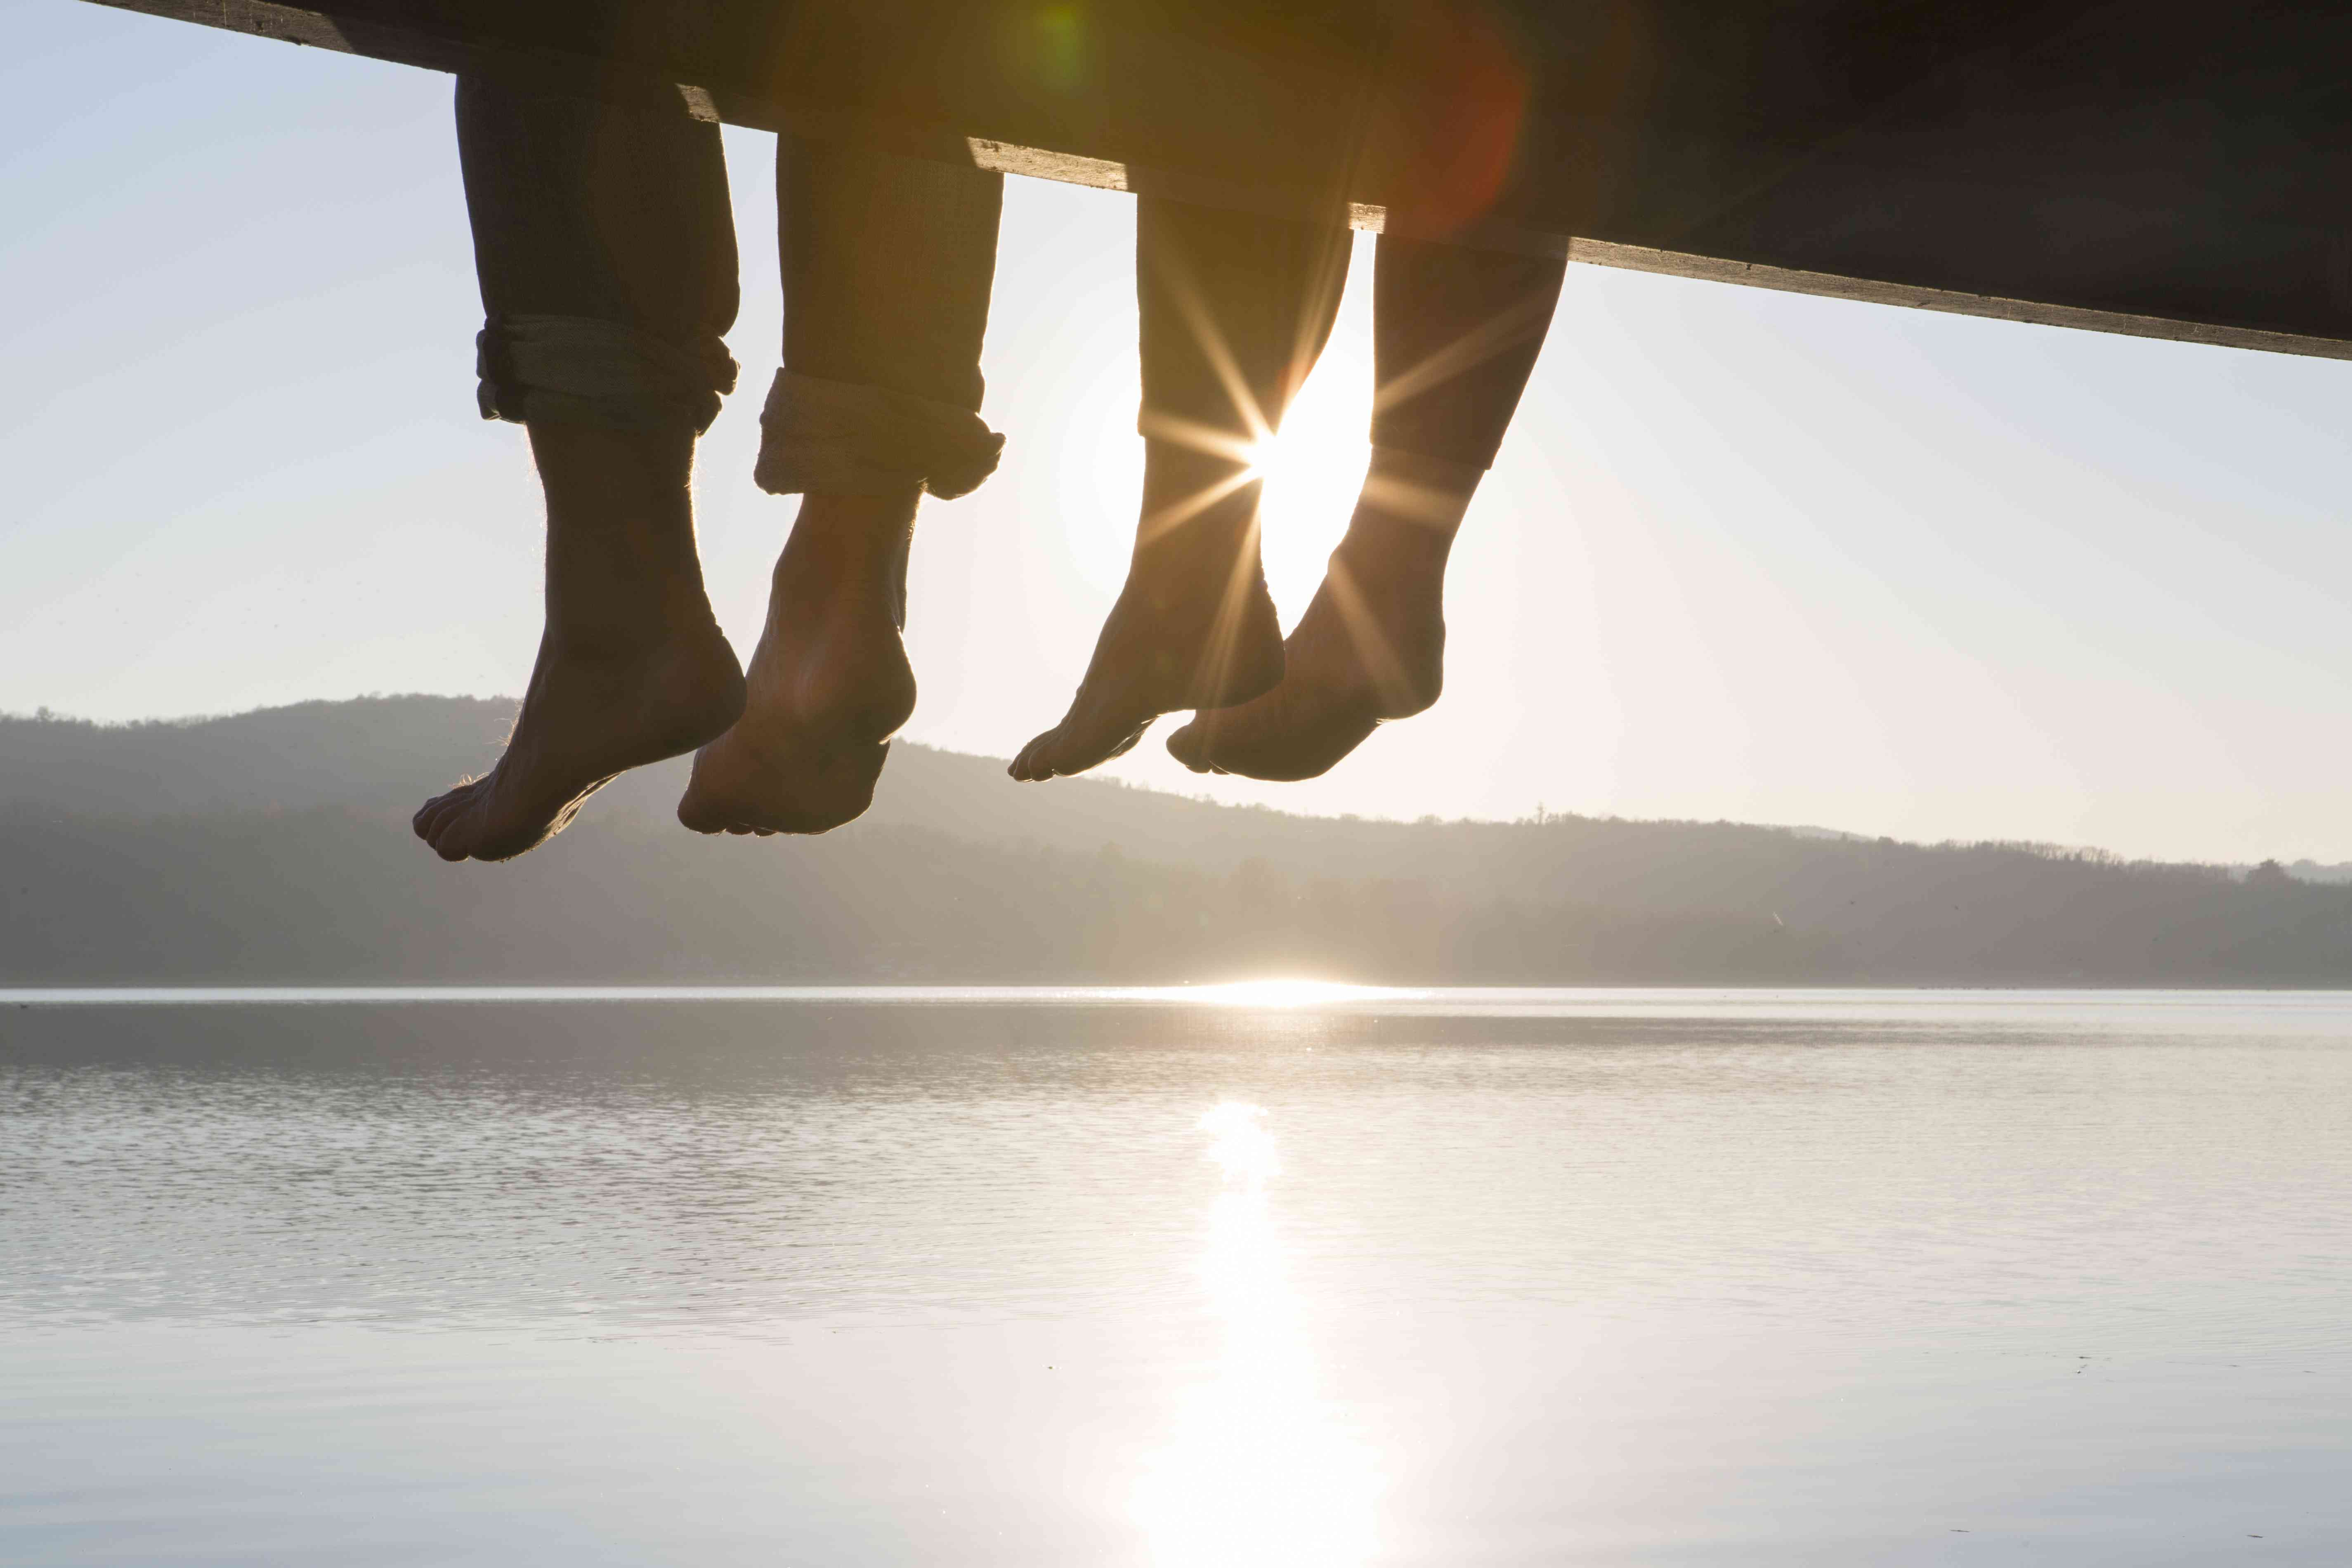 Feet dangling from dock with sun shining in background